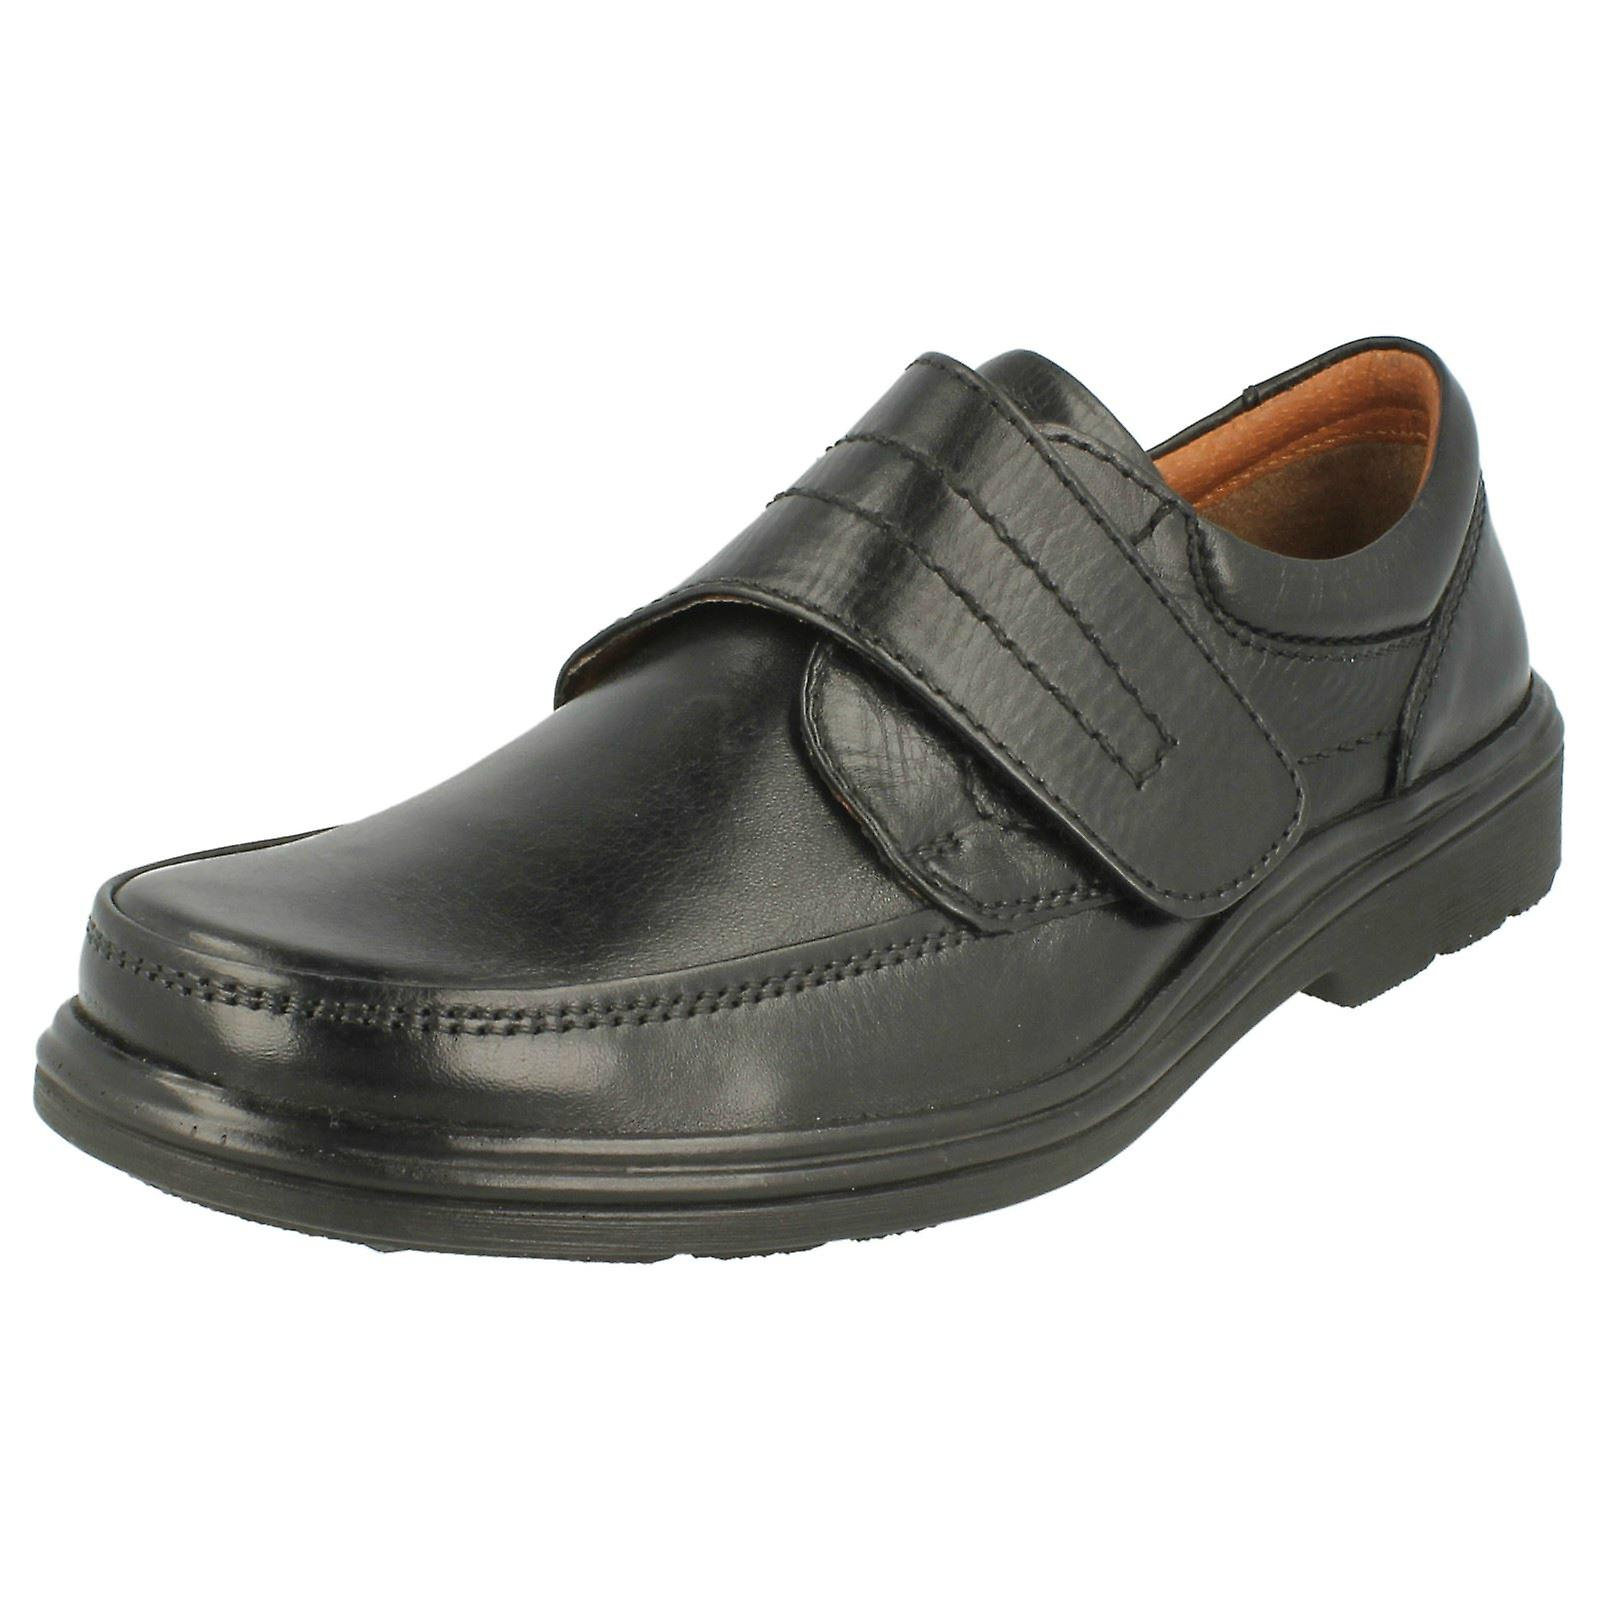 Mens Maverick Shoe Mens Maverick Leather a46a0qw